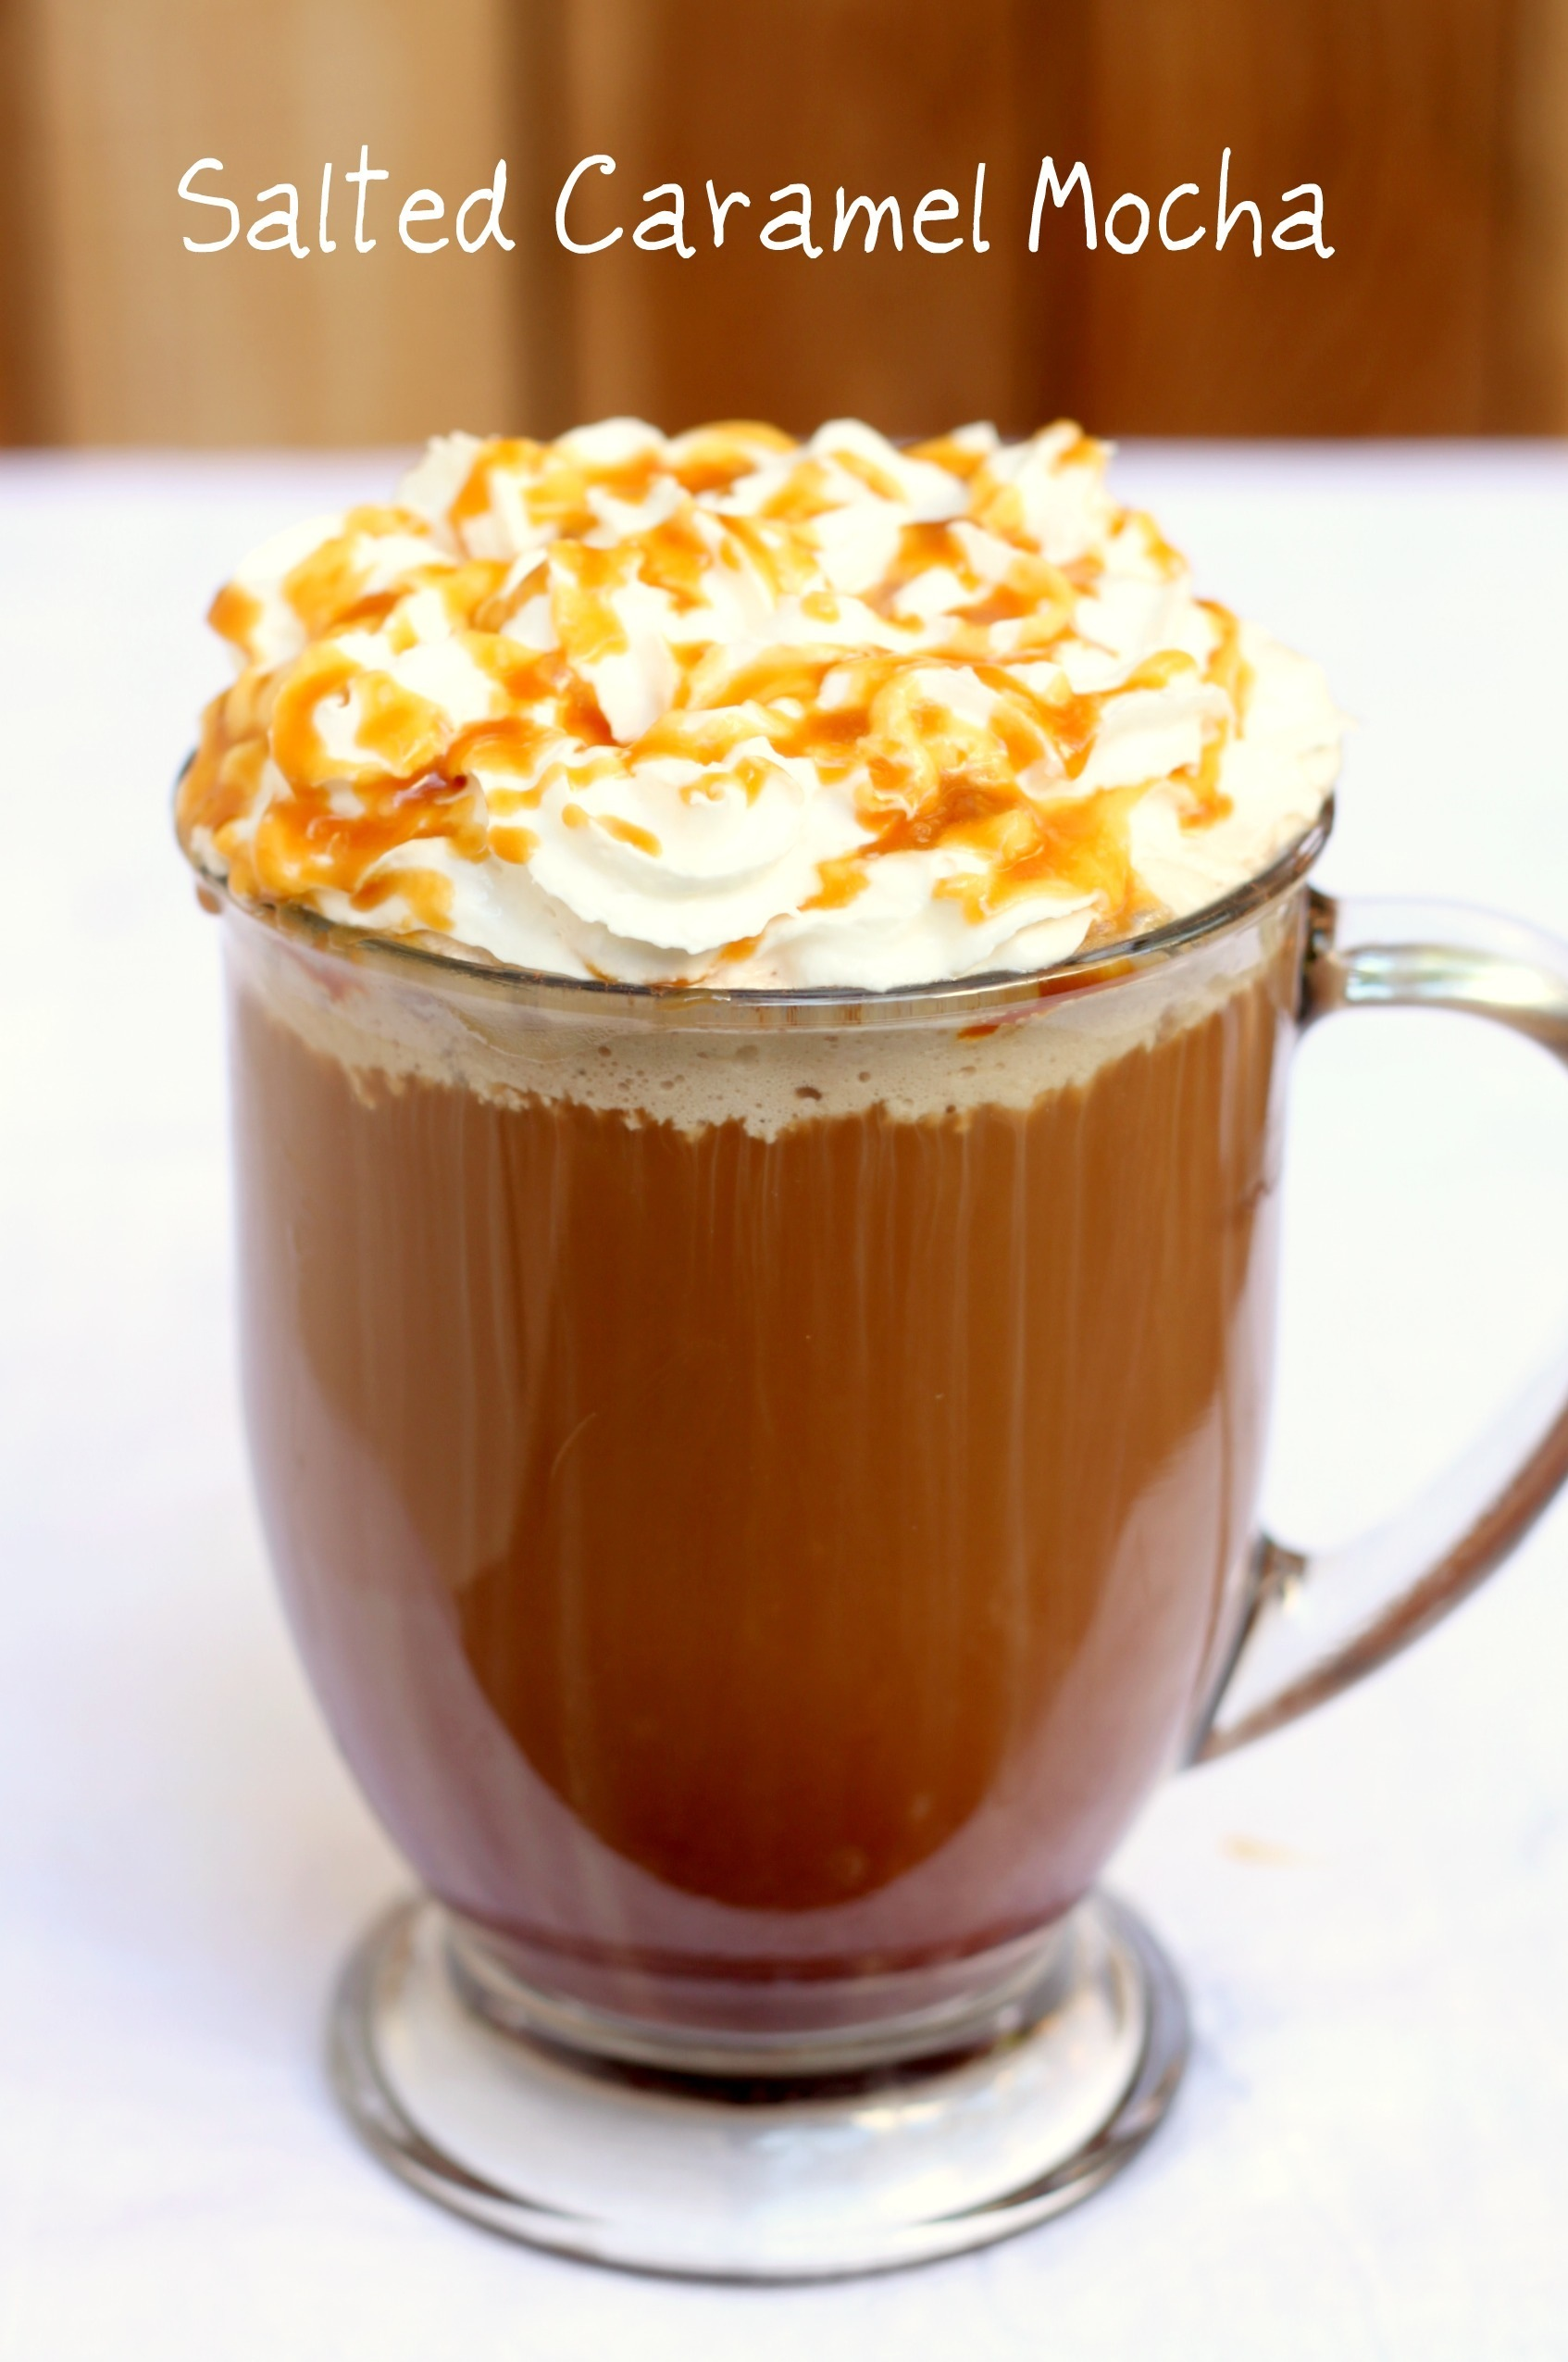 DIY STARBUCKS SALTED CARAMEL HOT CHOCOLATE / MOCHA (; GOOD FOR THE ...